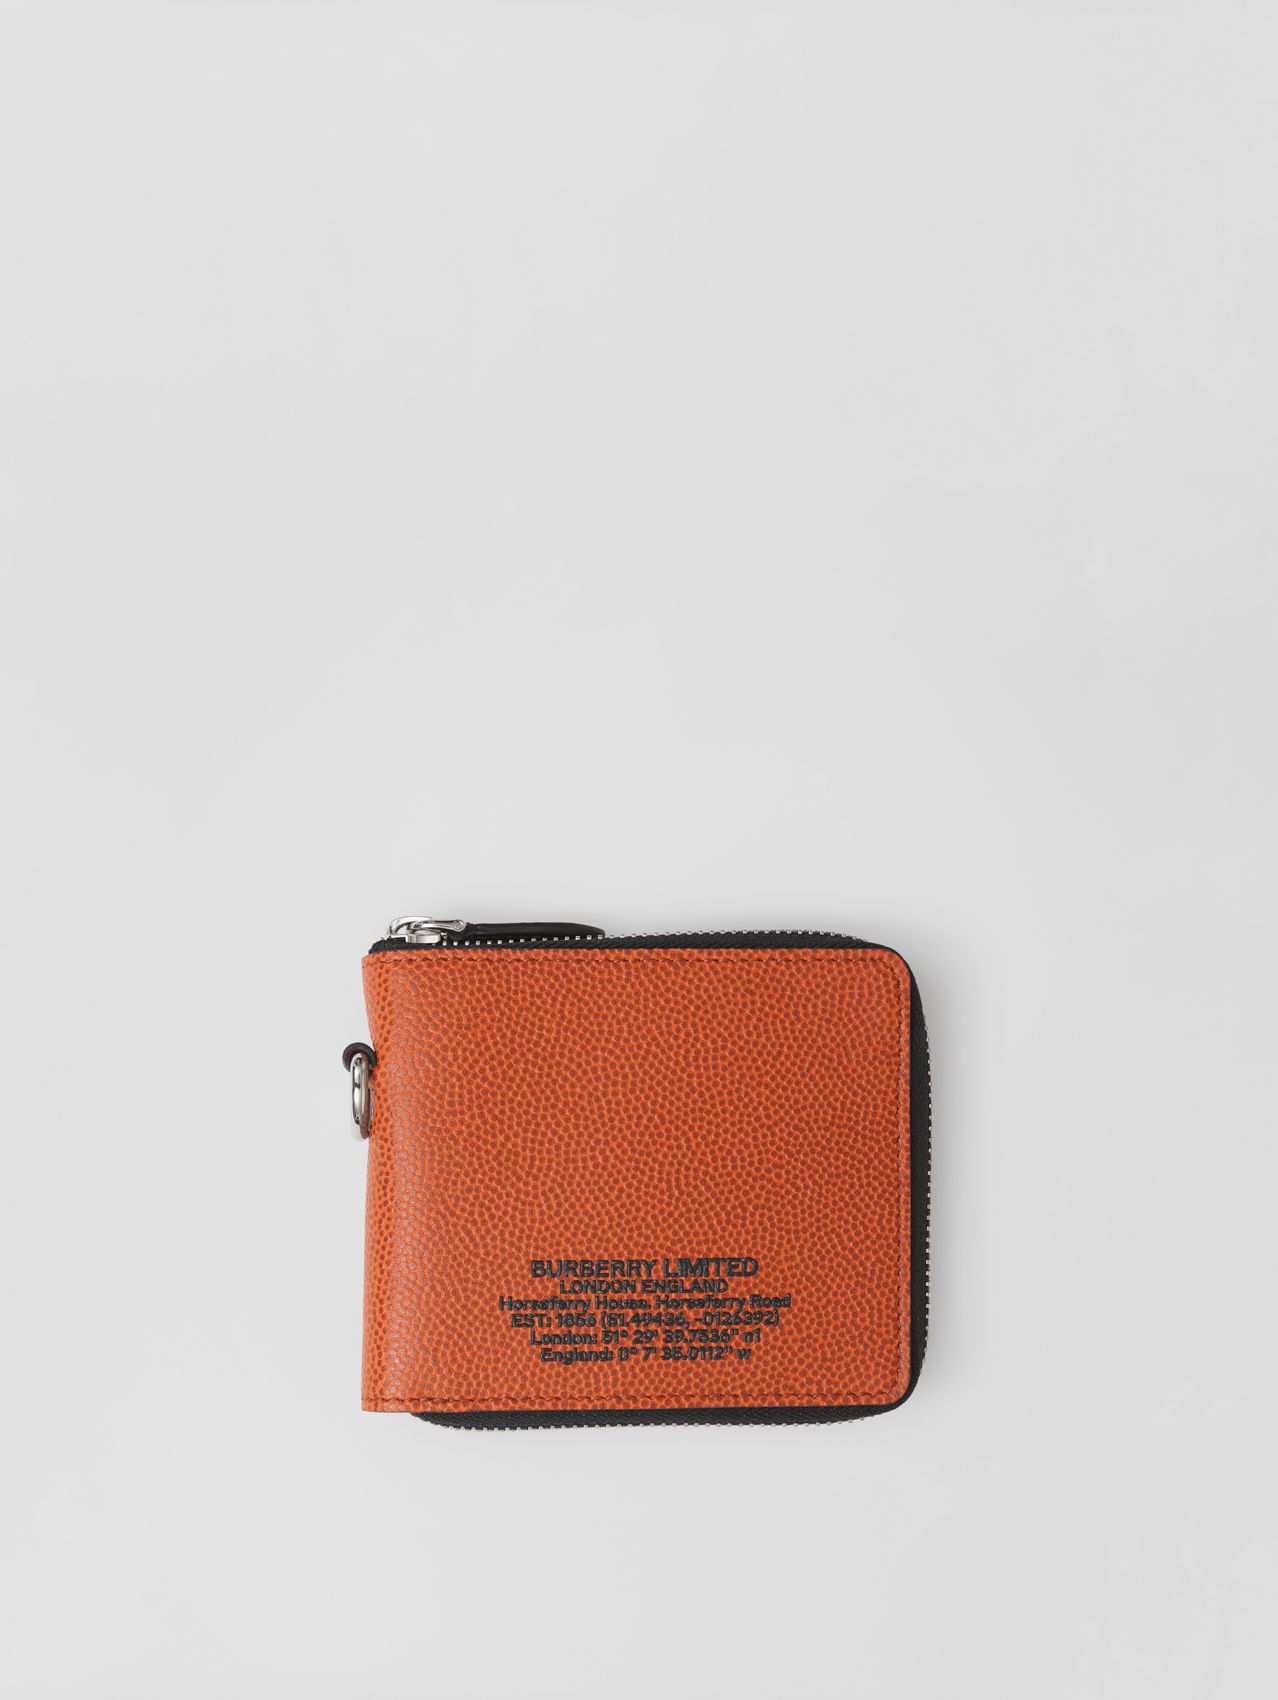 Horseferry Print Grainy Leather Ziparound Wallet Lanyard in Earthy Orange